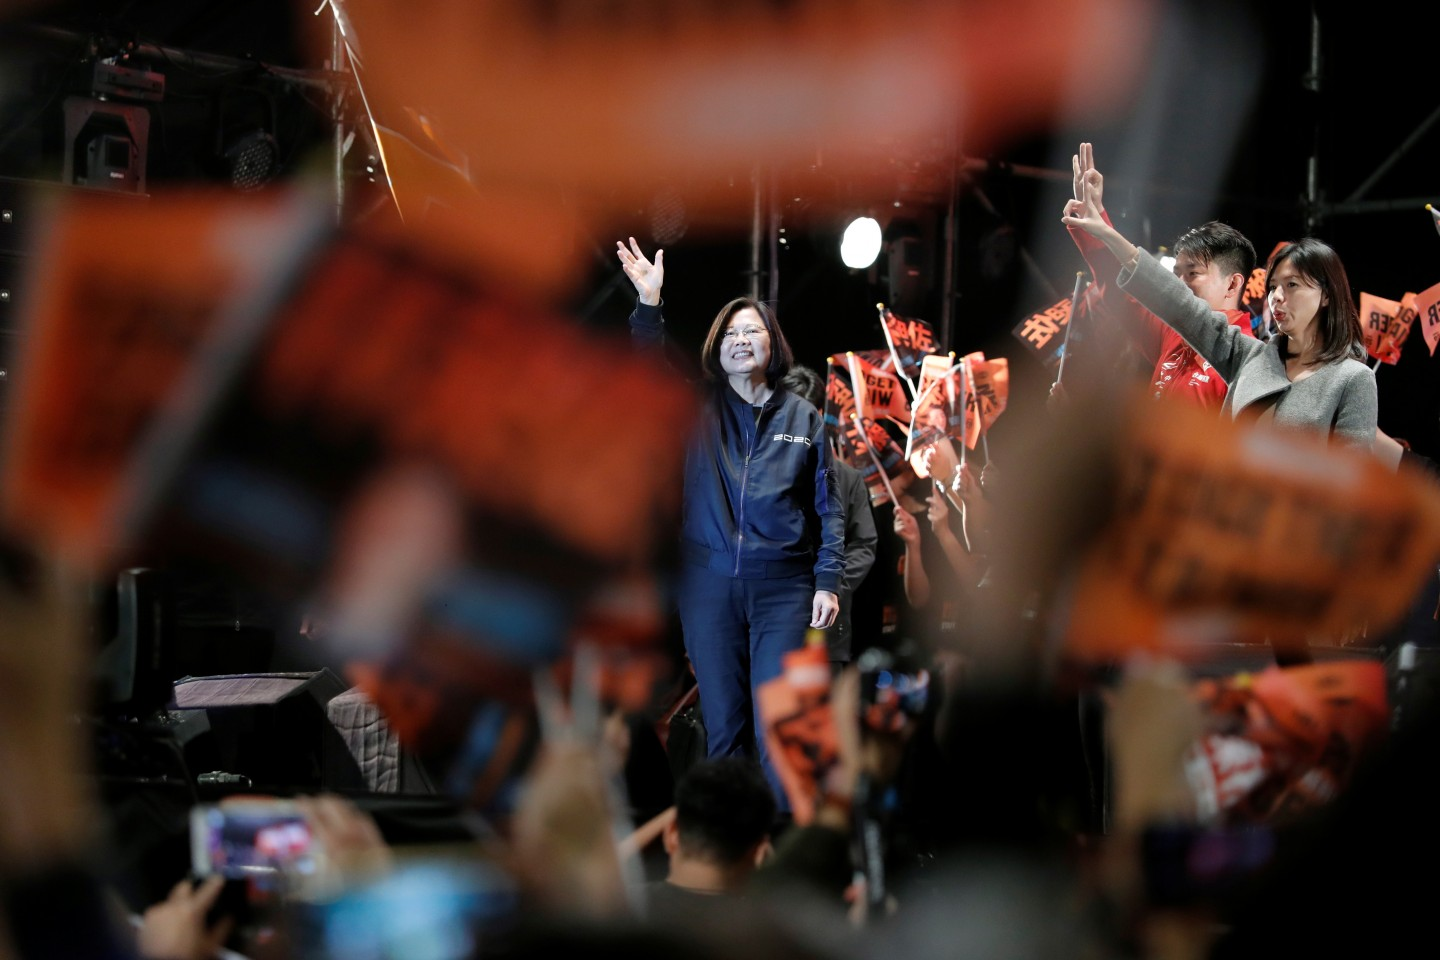 Taiwan President Tsai Ing-wen attends a campaign rally ahead of the presidential election in Taipei, Taiwan on December 21, 2019. (Tyrone Siu/Reuters)